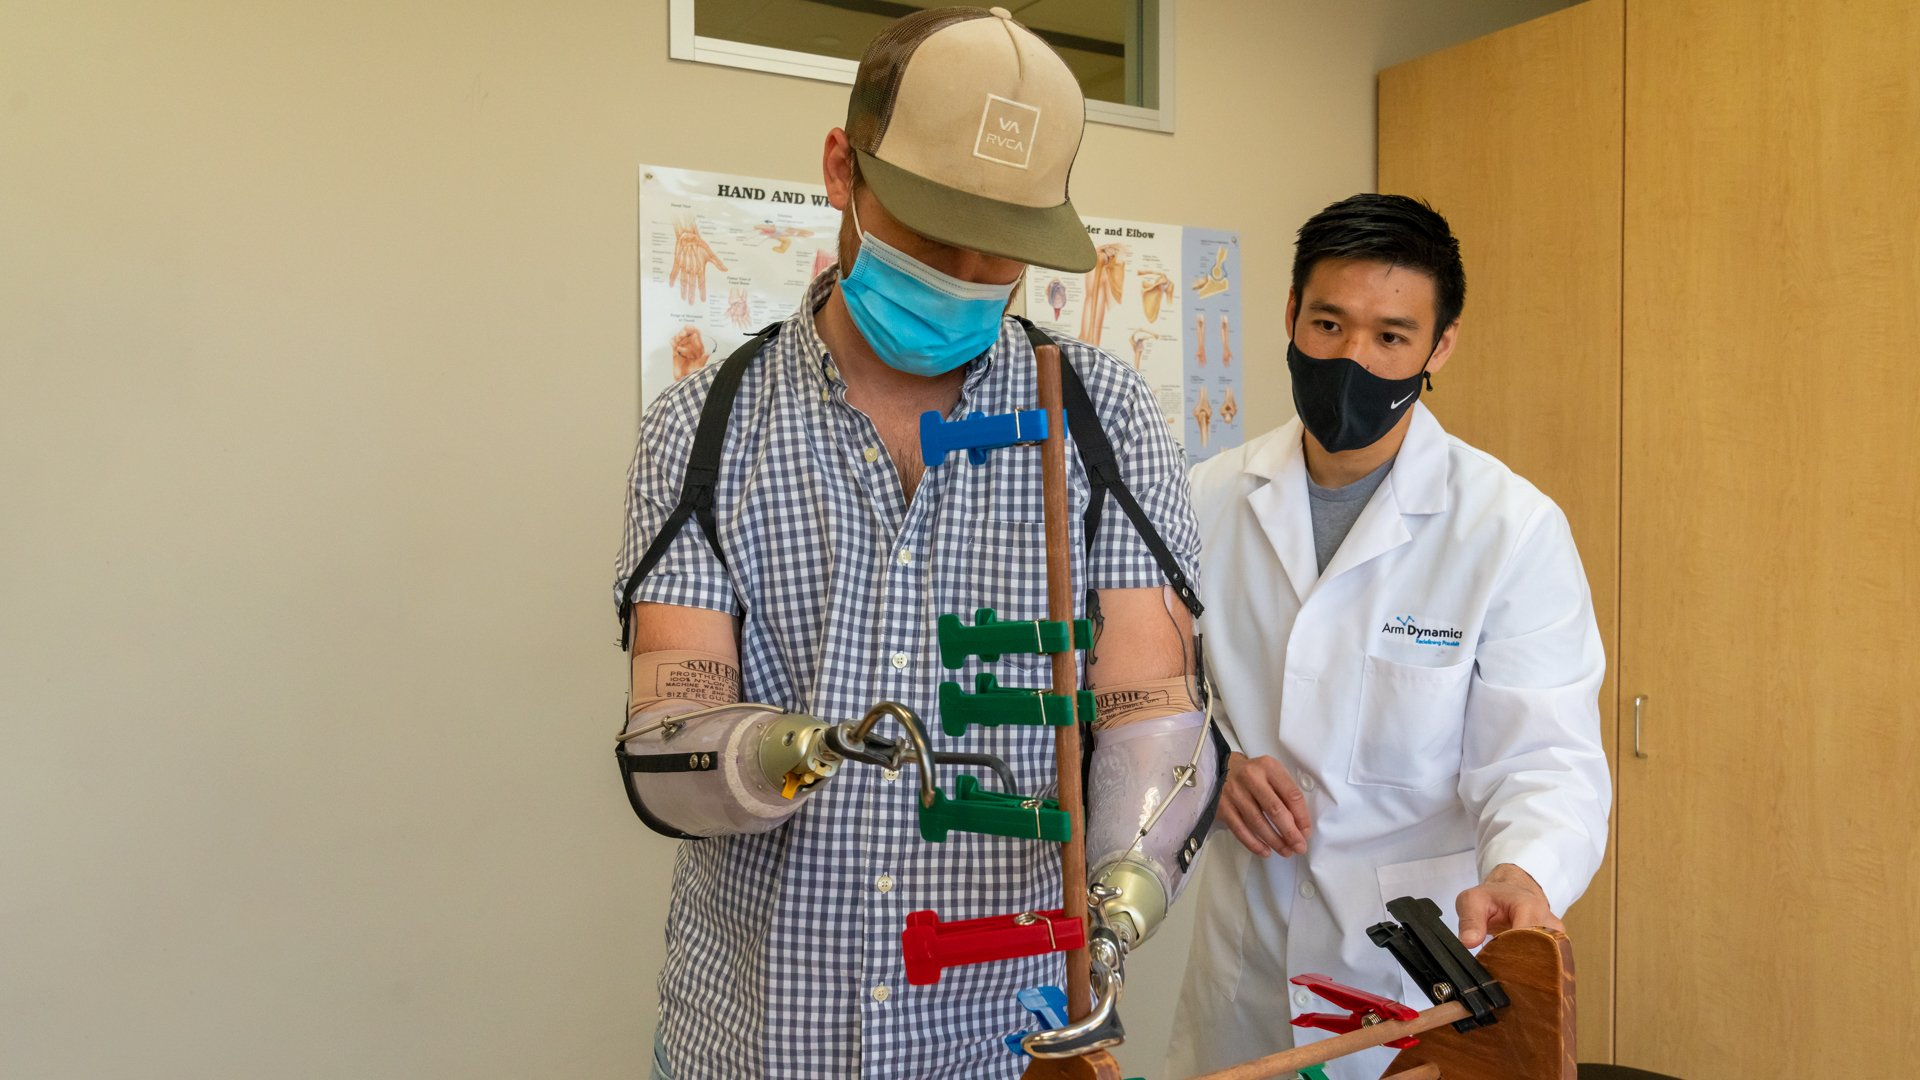 Arm Dynamics clinical therapy specialist working with a patient